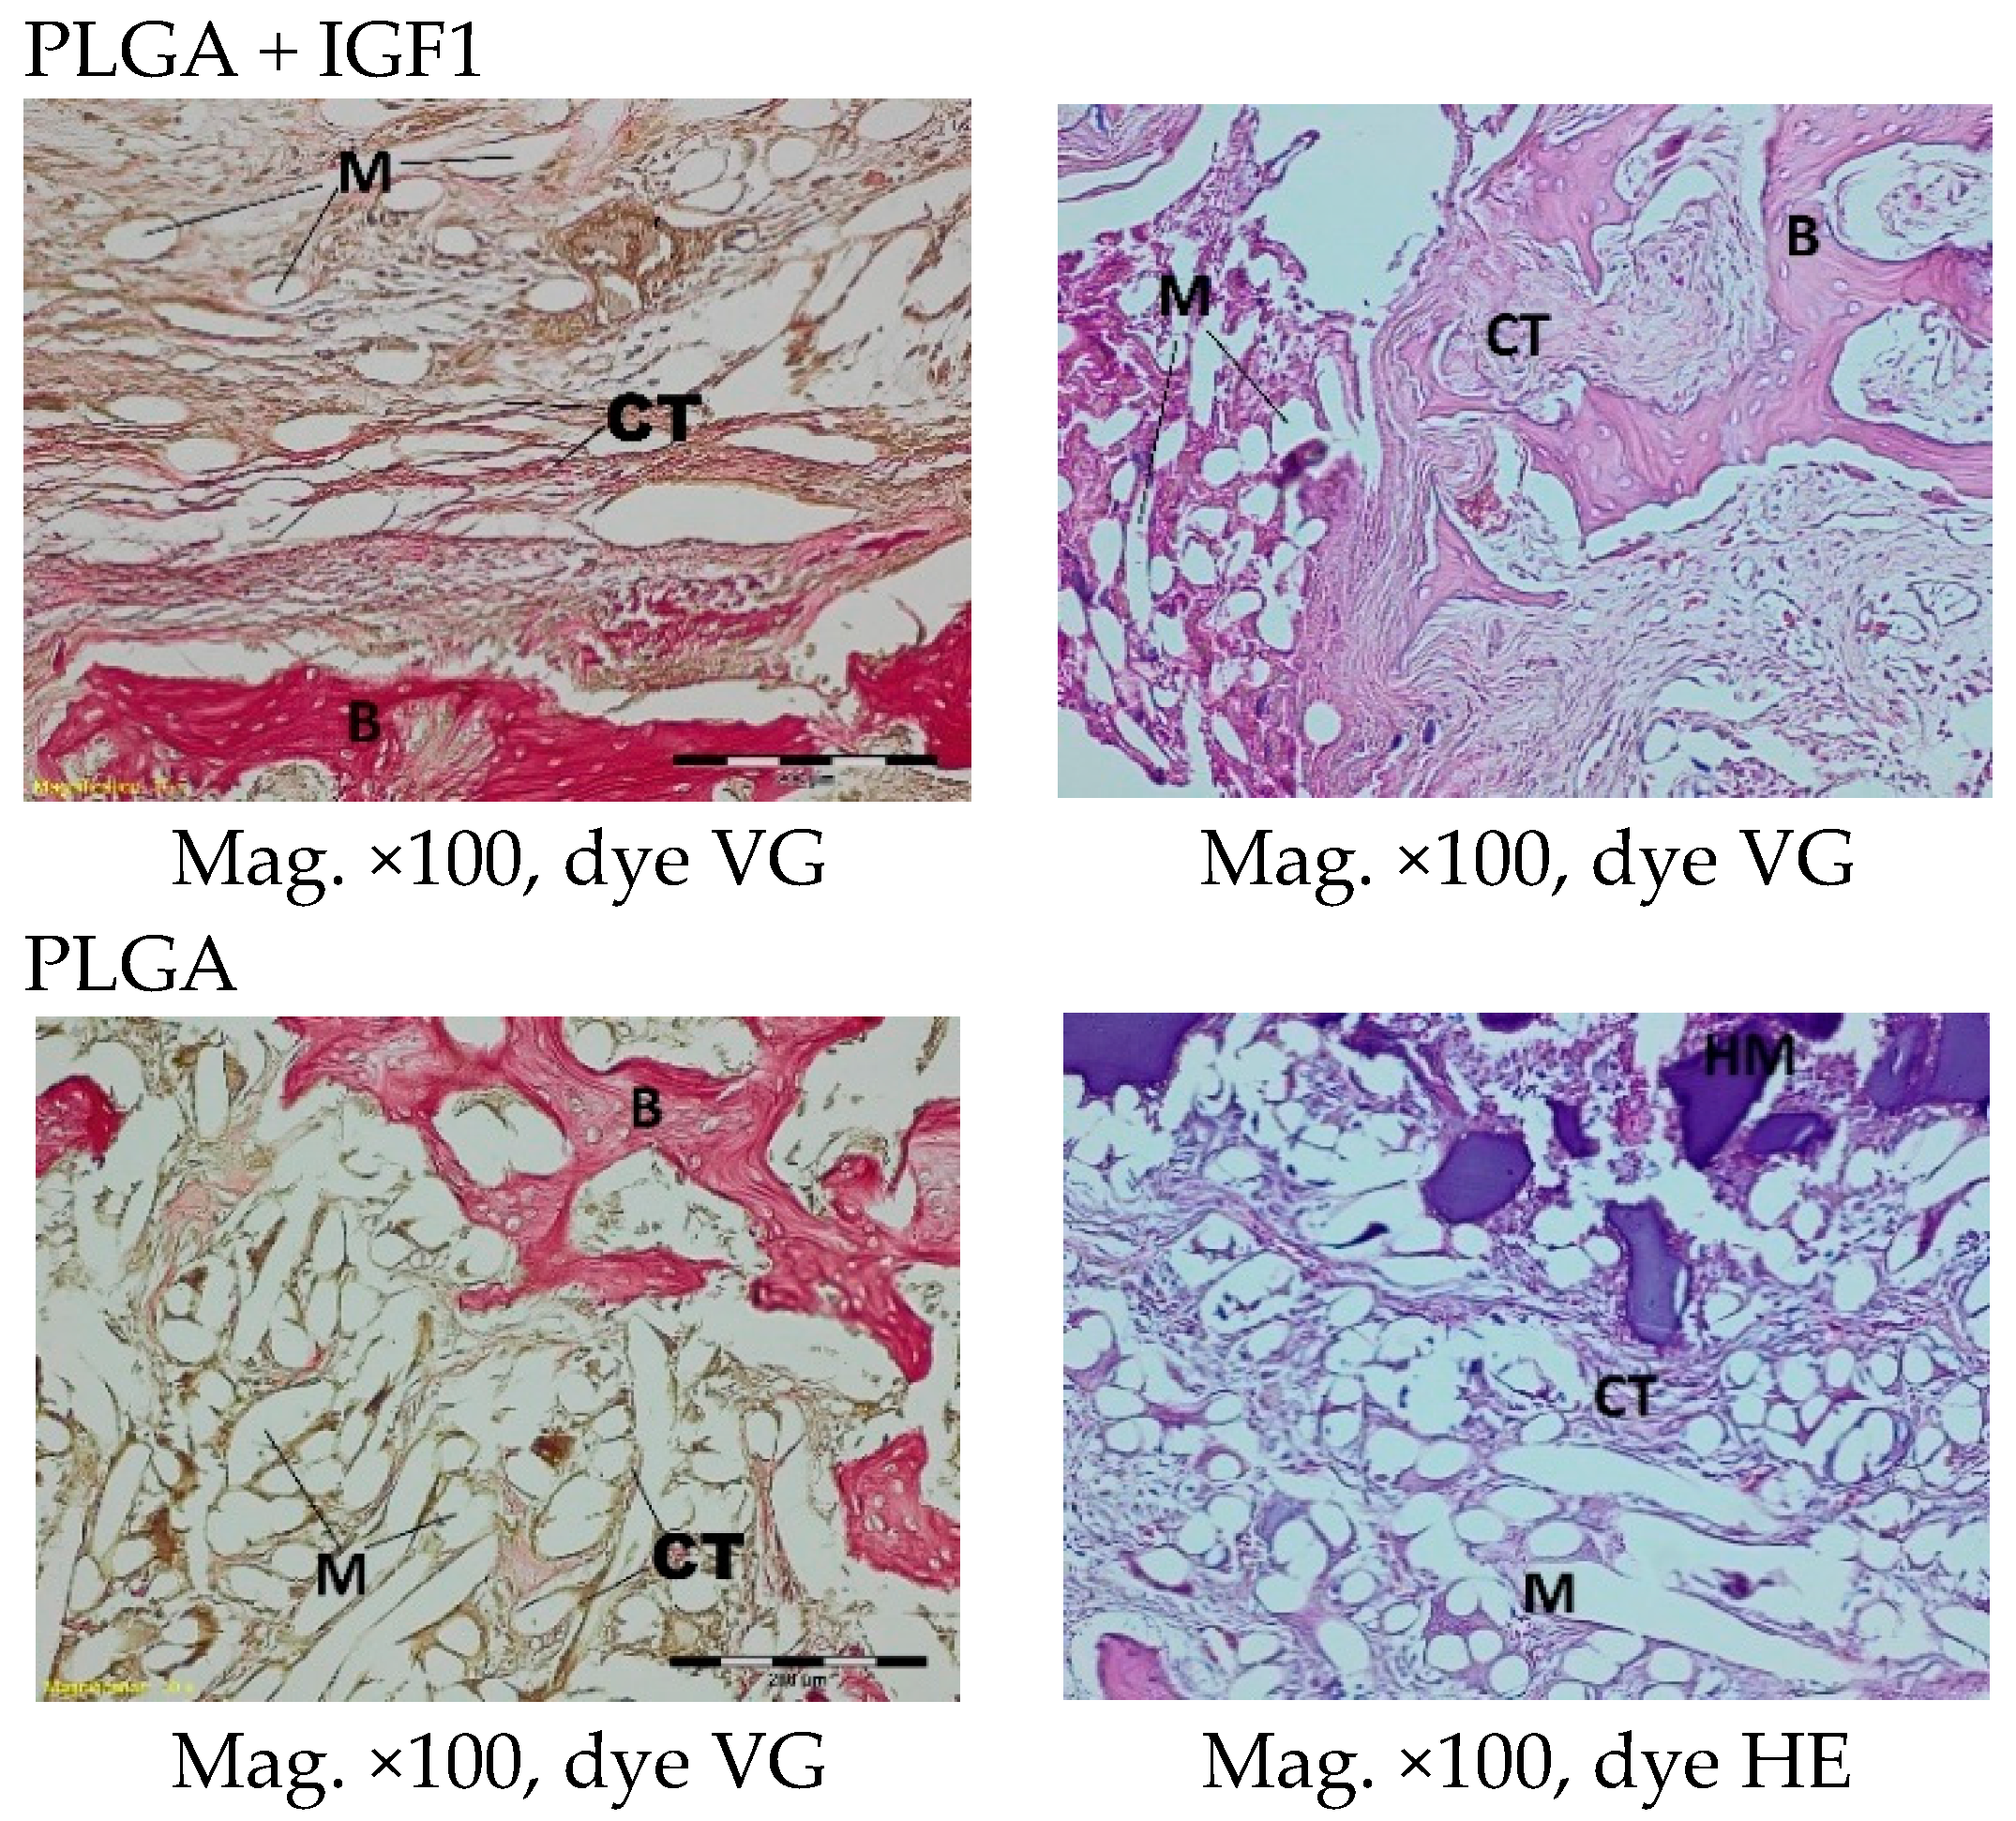 Molecules Free Full Text Biological Properties Of Low Toxic Plga And Plga Phb Fibrous Nanocomposite Scaffolds For Osseous Tissue Regeneration Evaluation Of Potential Bioactivity Html